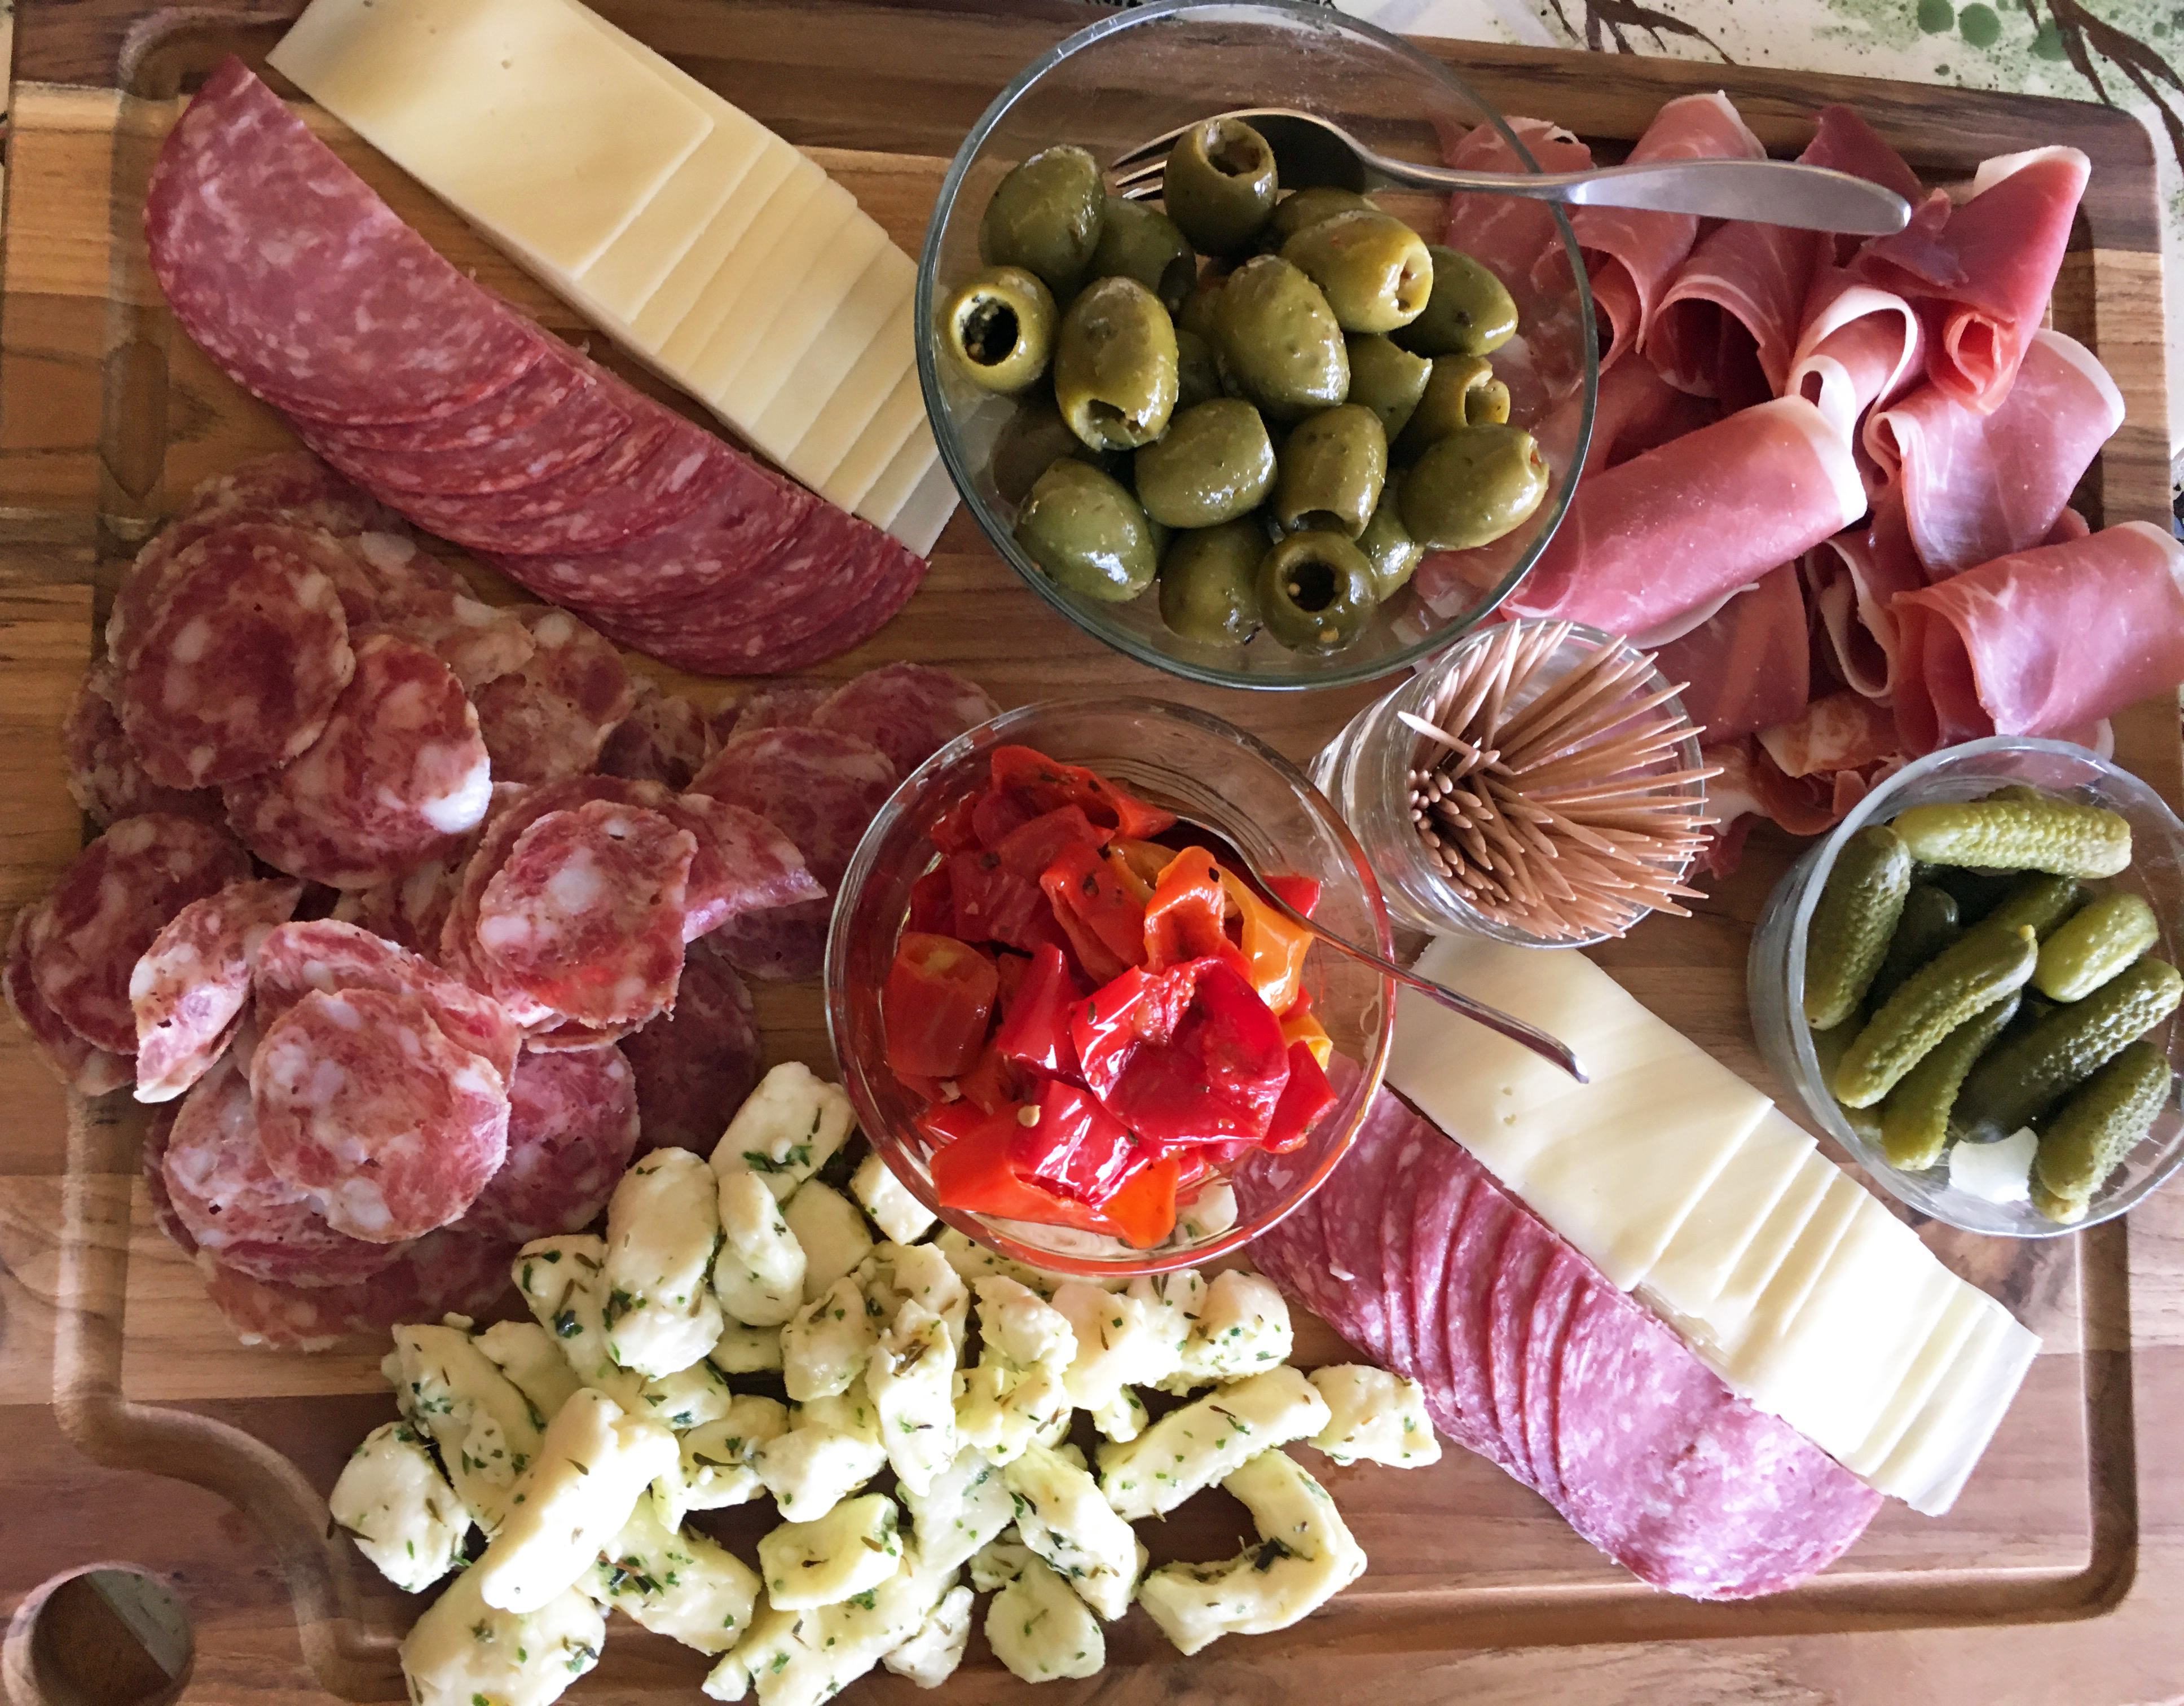 A Simple Charcuterie And Cheese Board In The Kitchen